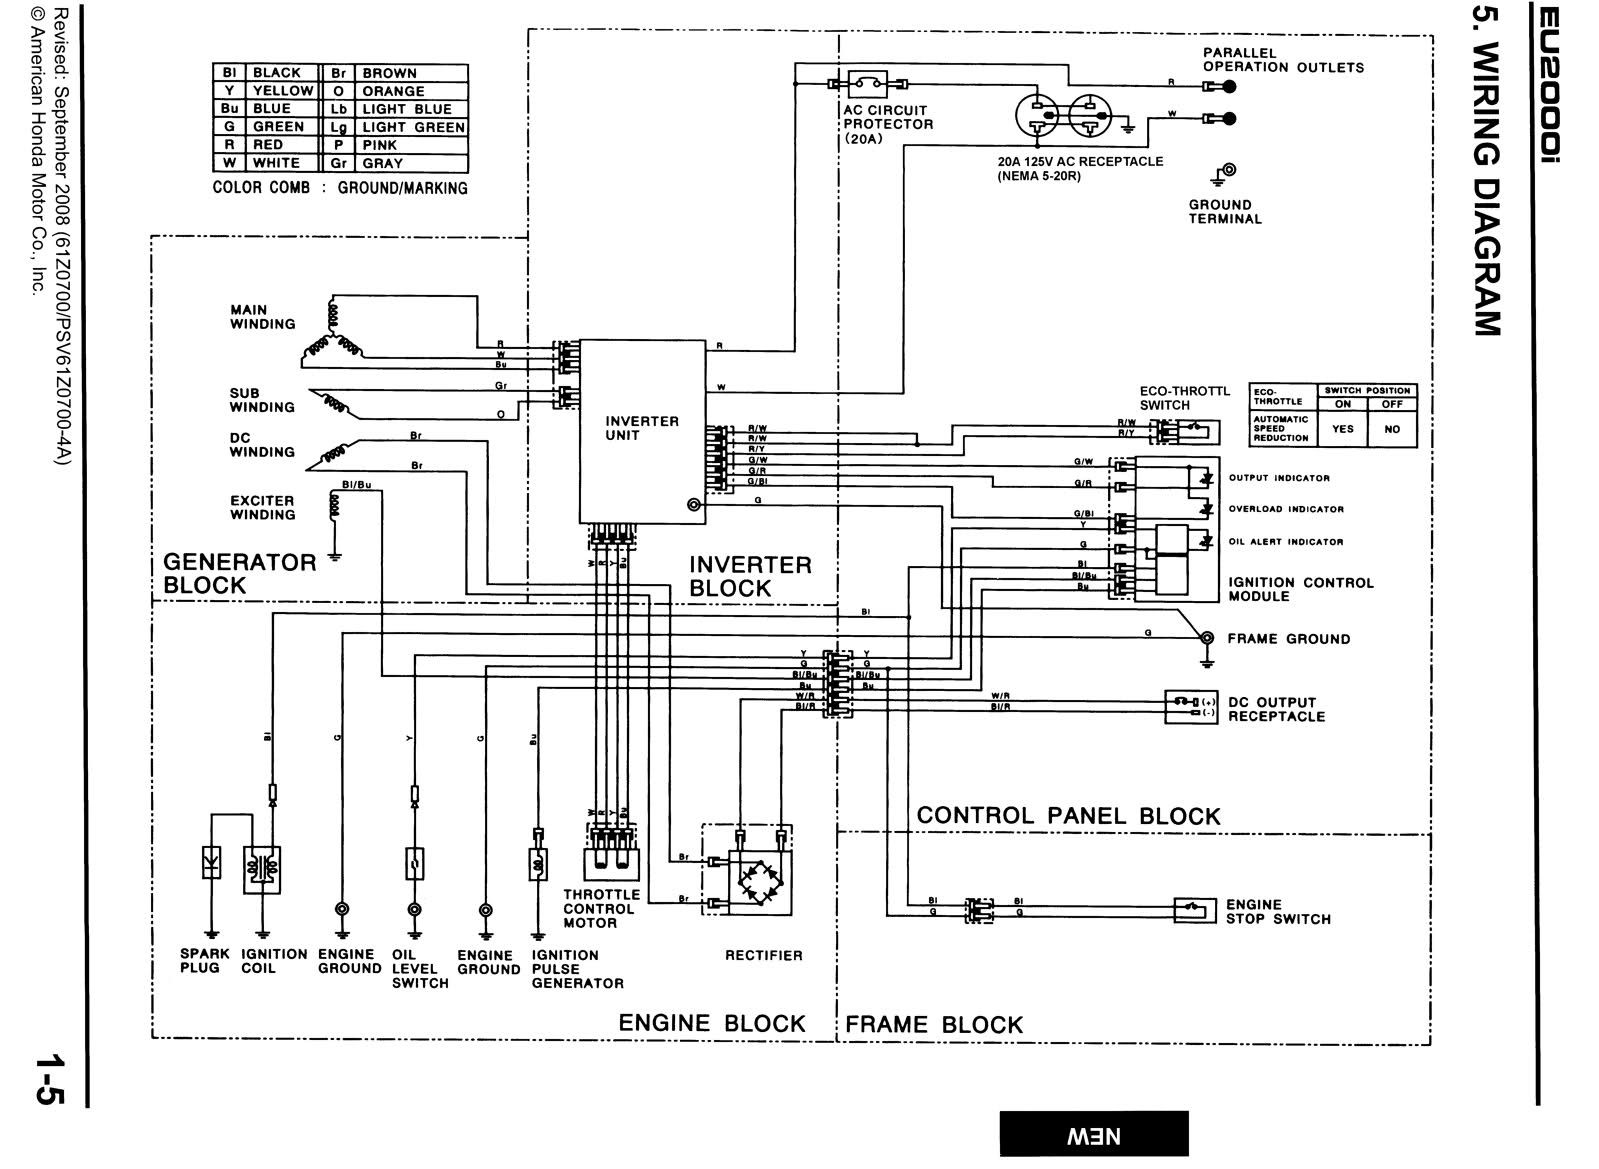 inverter wiring diagram for rv bmw x5 audio holiday rambler camper to glamper